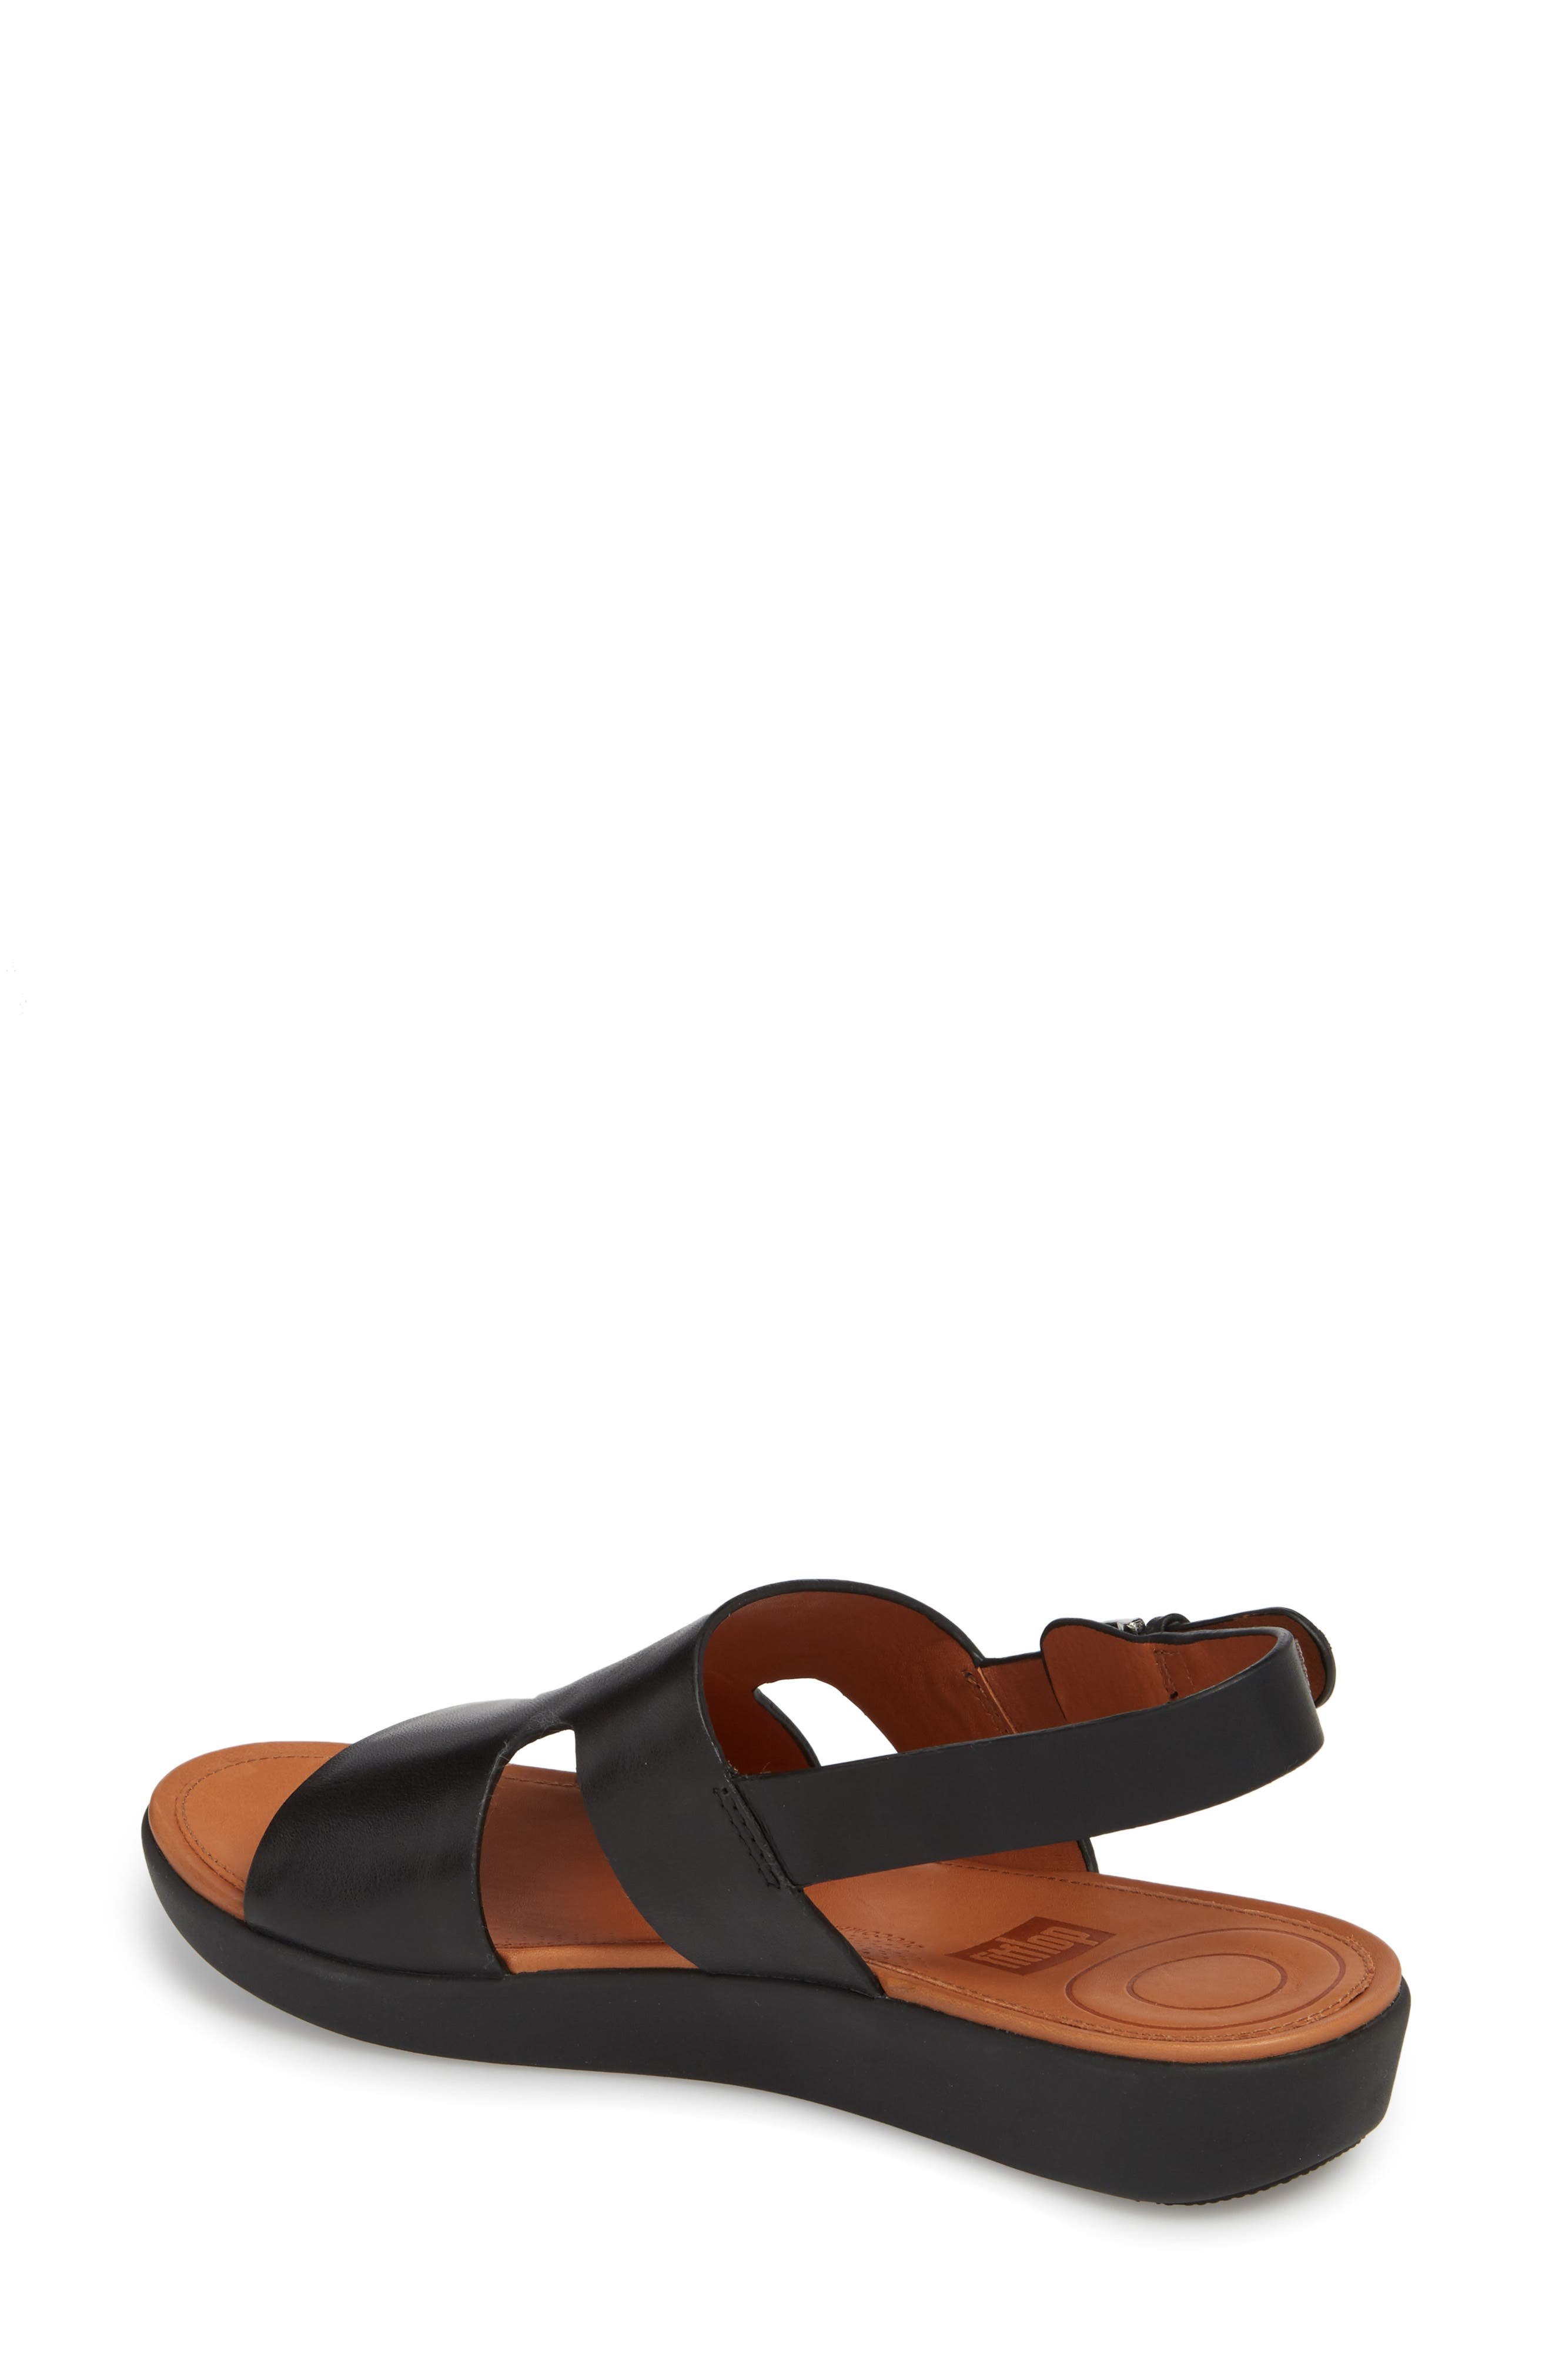 H-Bar Slingback Sandal,                             Alternate thumbnail 2, color,                             Black Leather